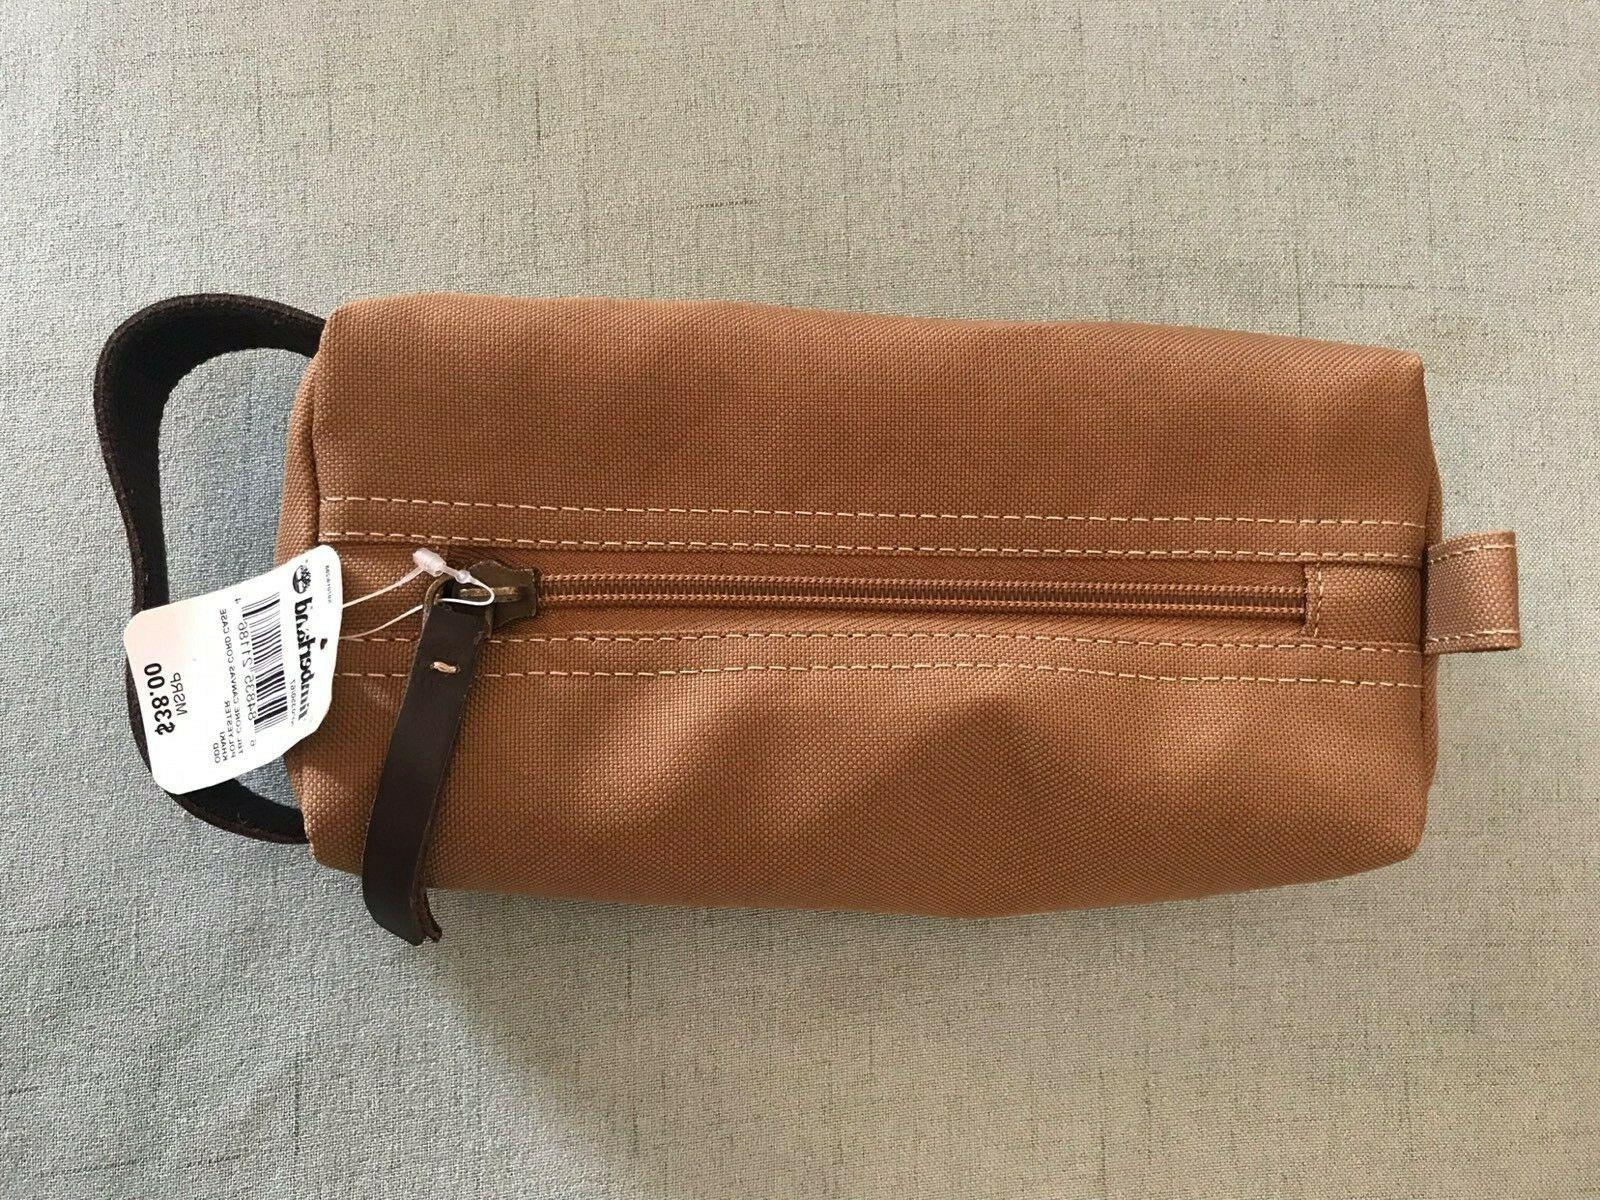 TIMBERLAND CORE UTILITY CASE WITH TAGS